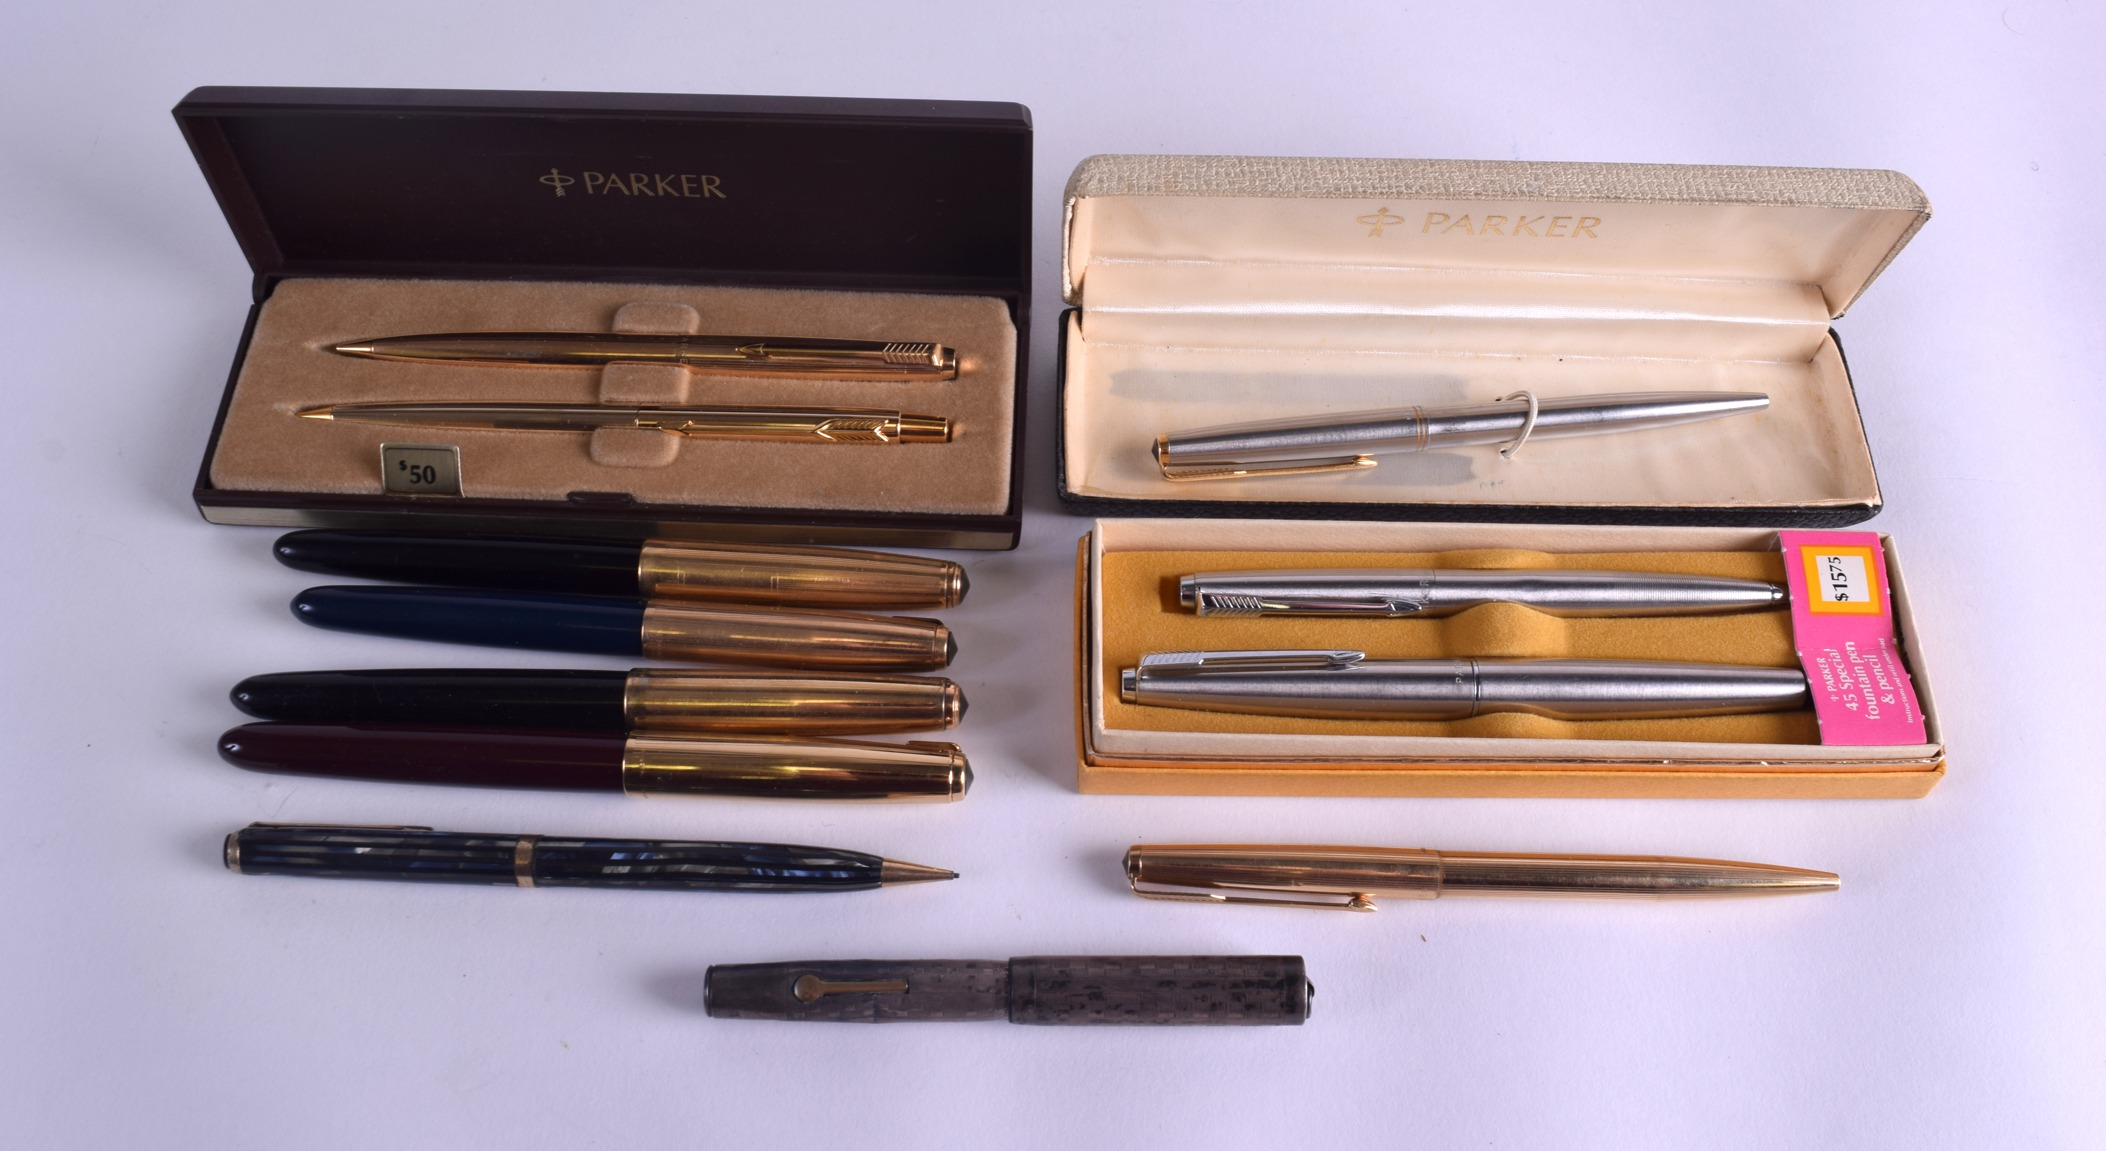 Lot 875 - A COLLECTION OF PARKER FOUNTAIN PENS together with other Parker pens. (14)